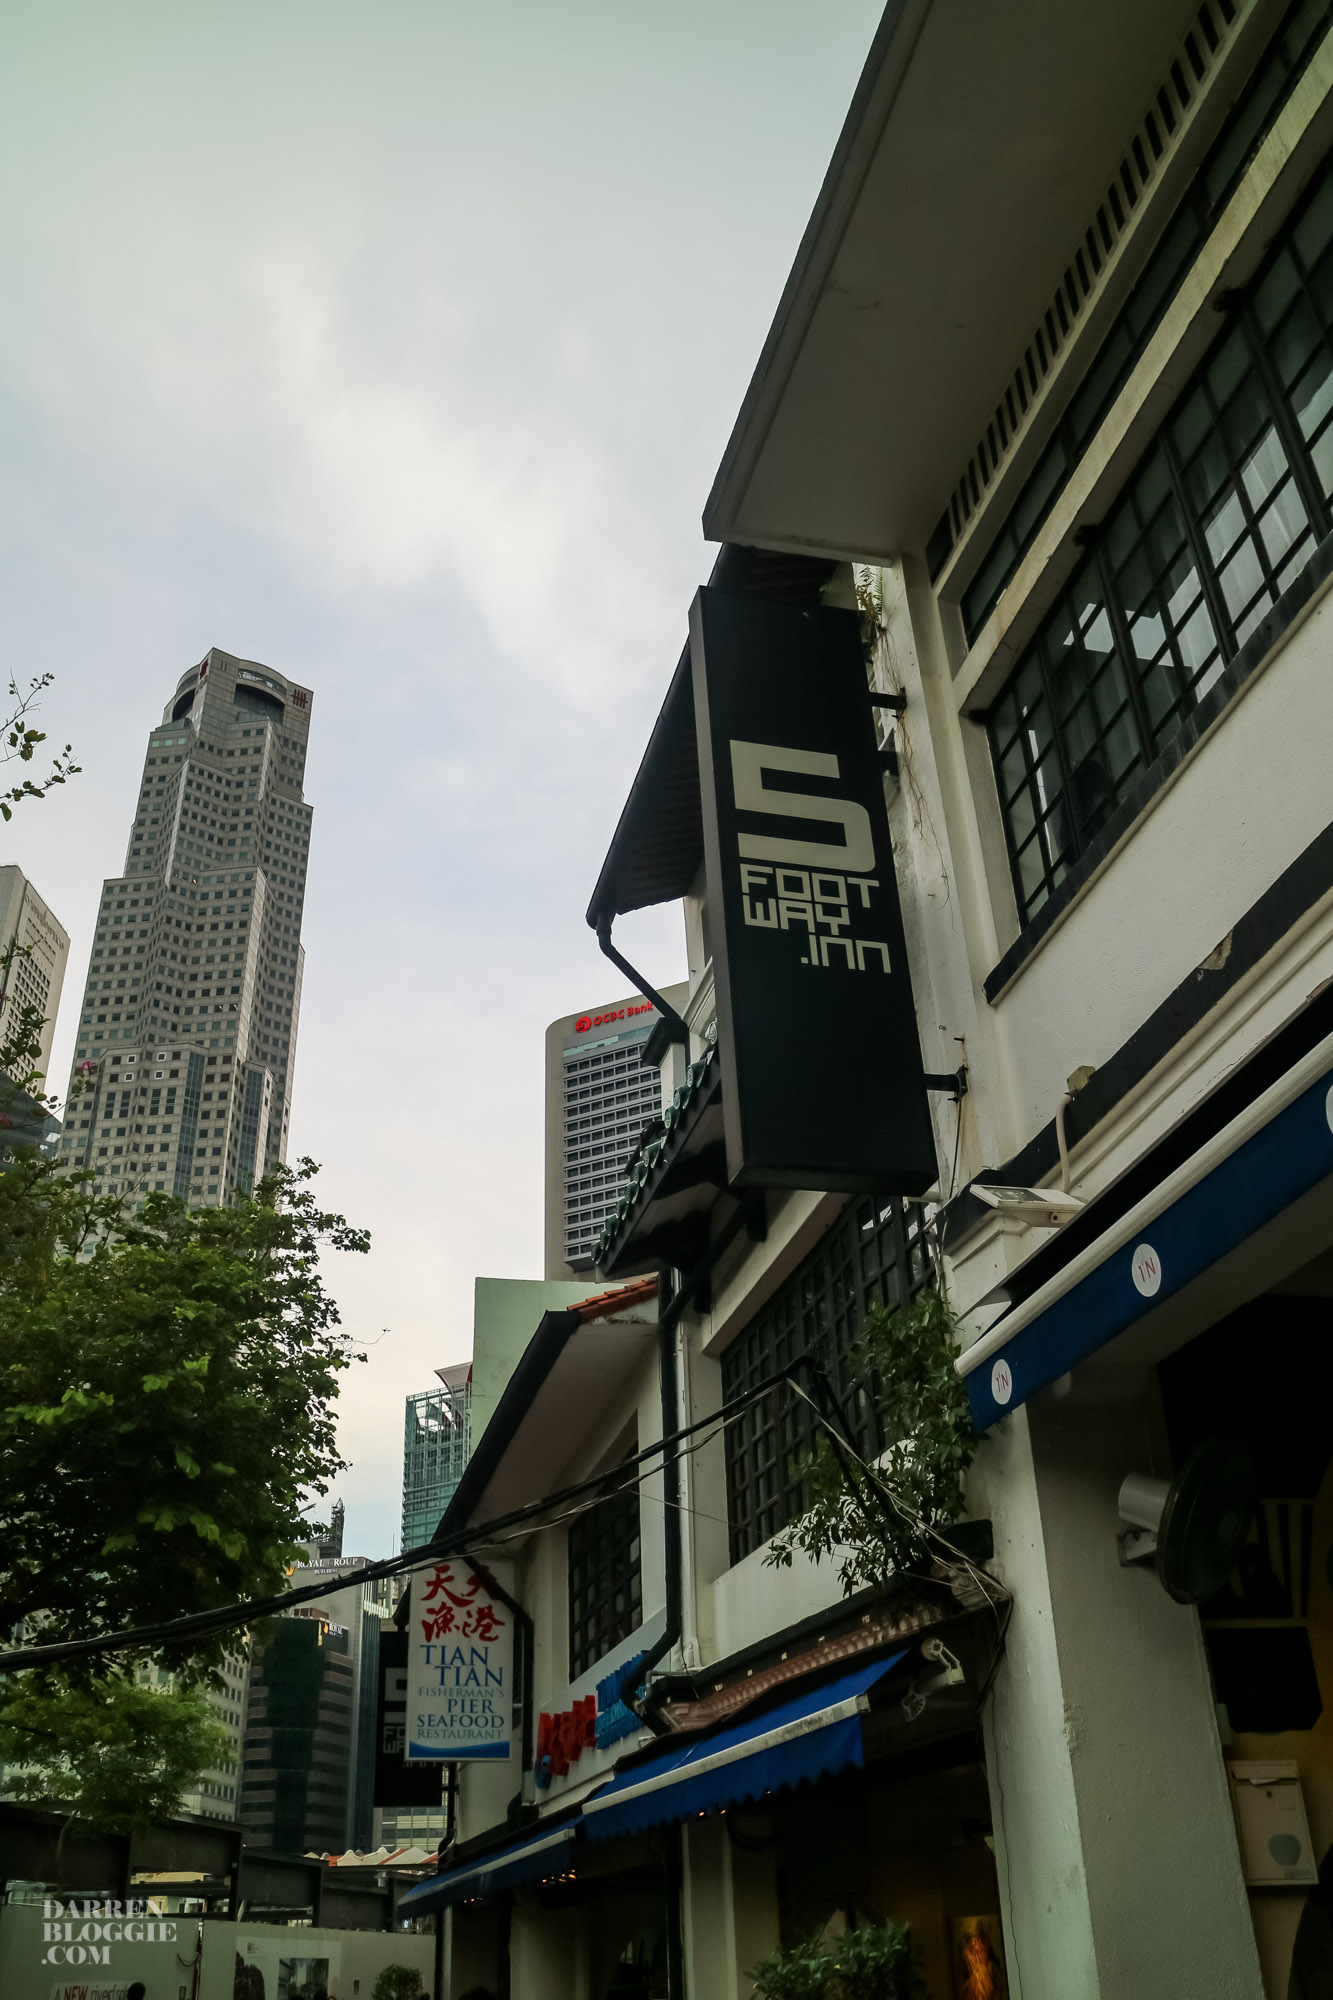 5footwayinn-boatquay-singapore-38